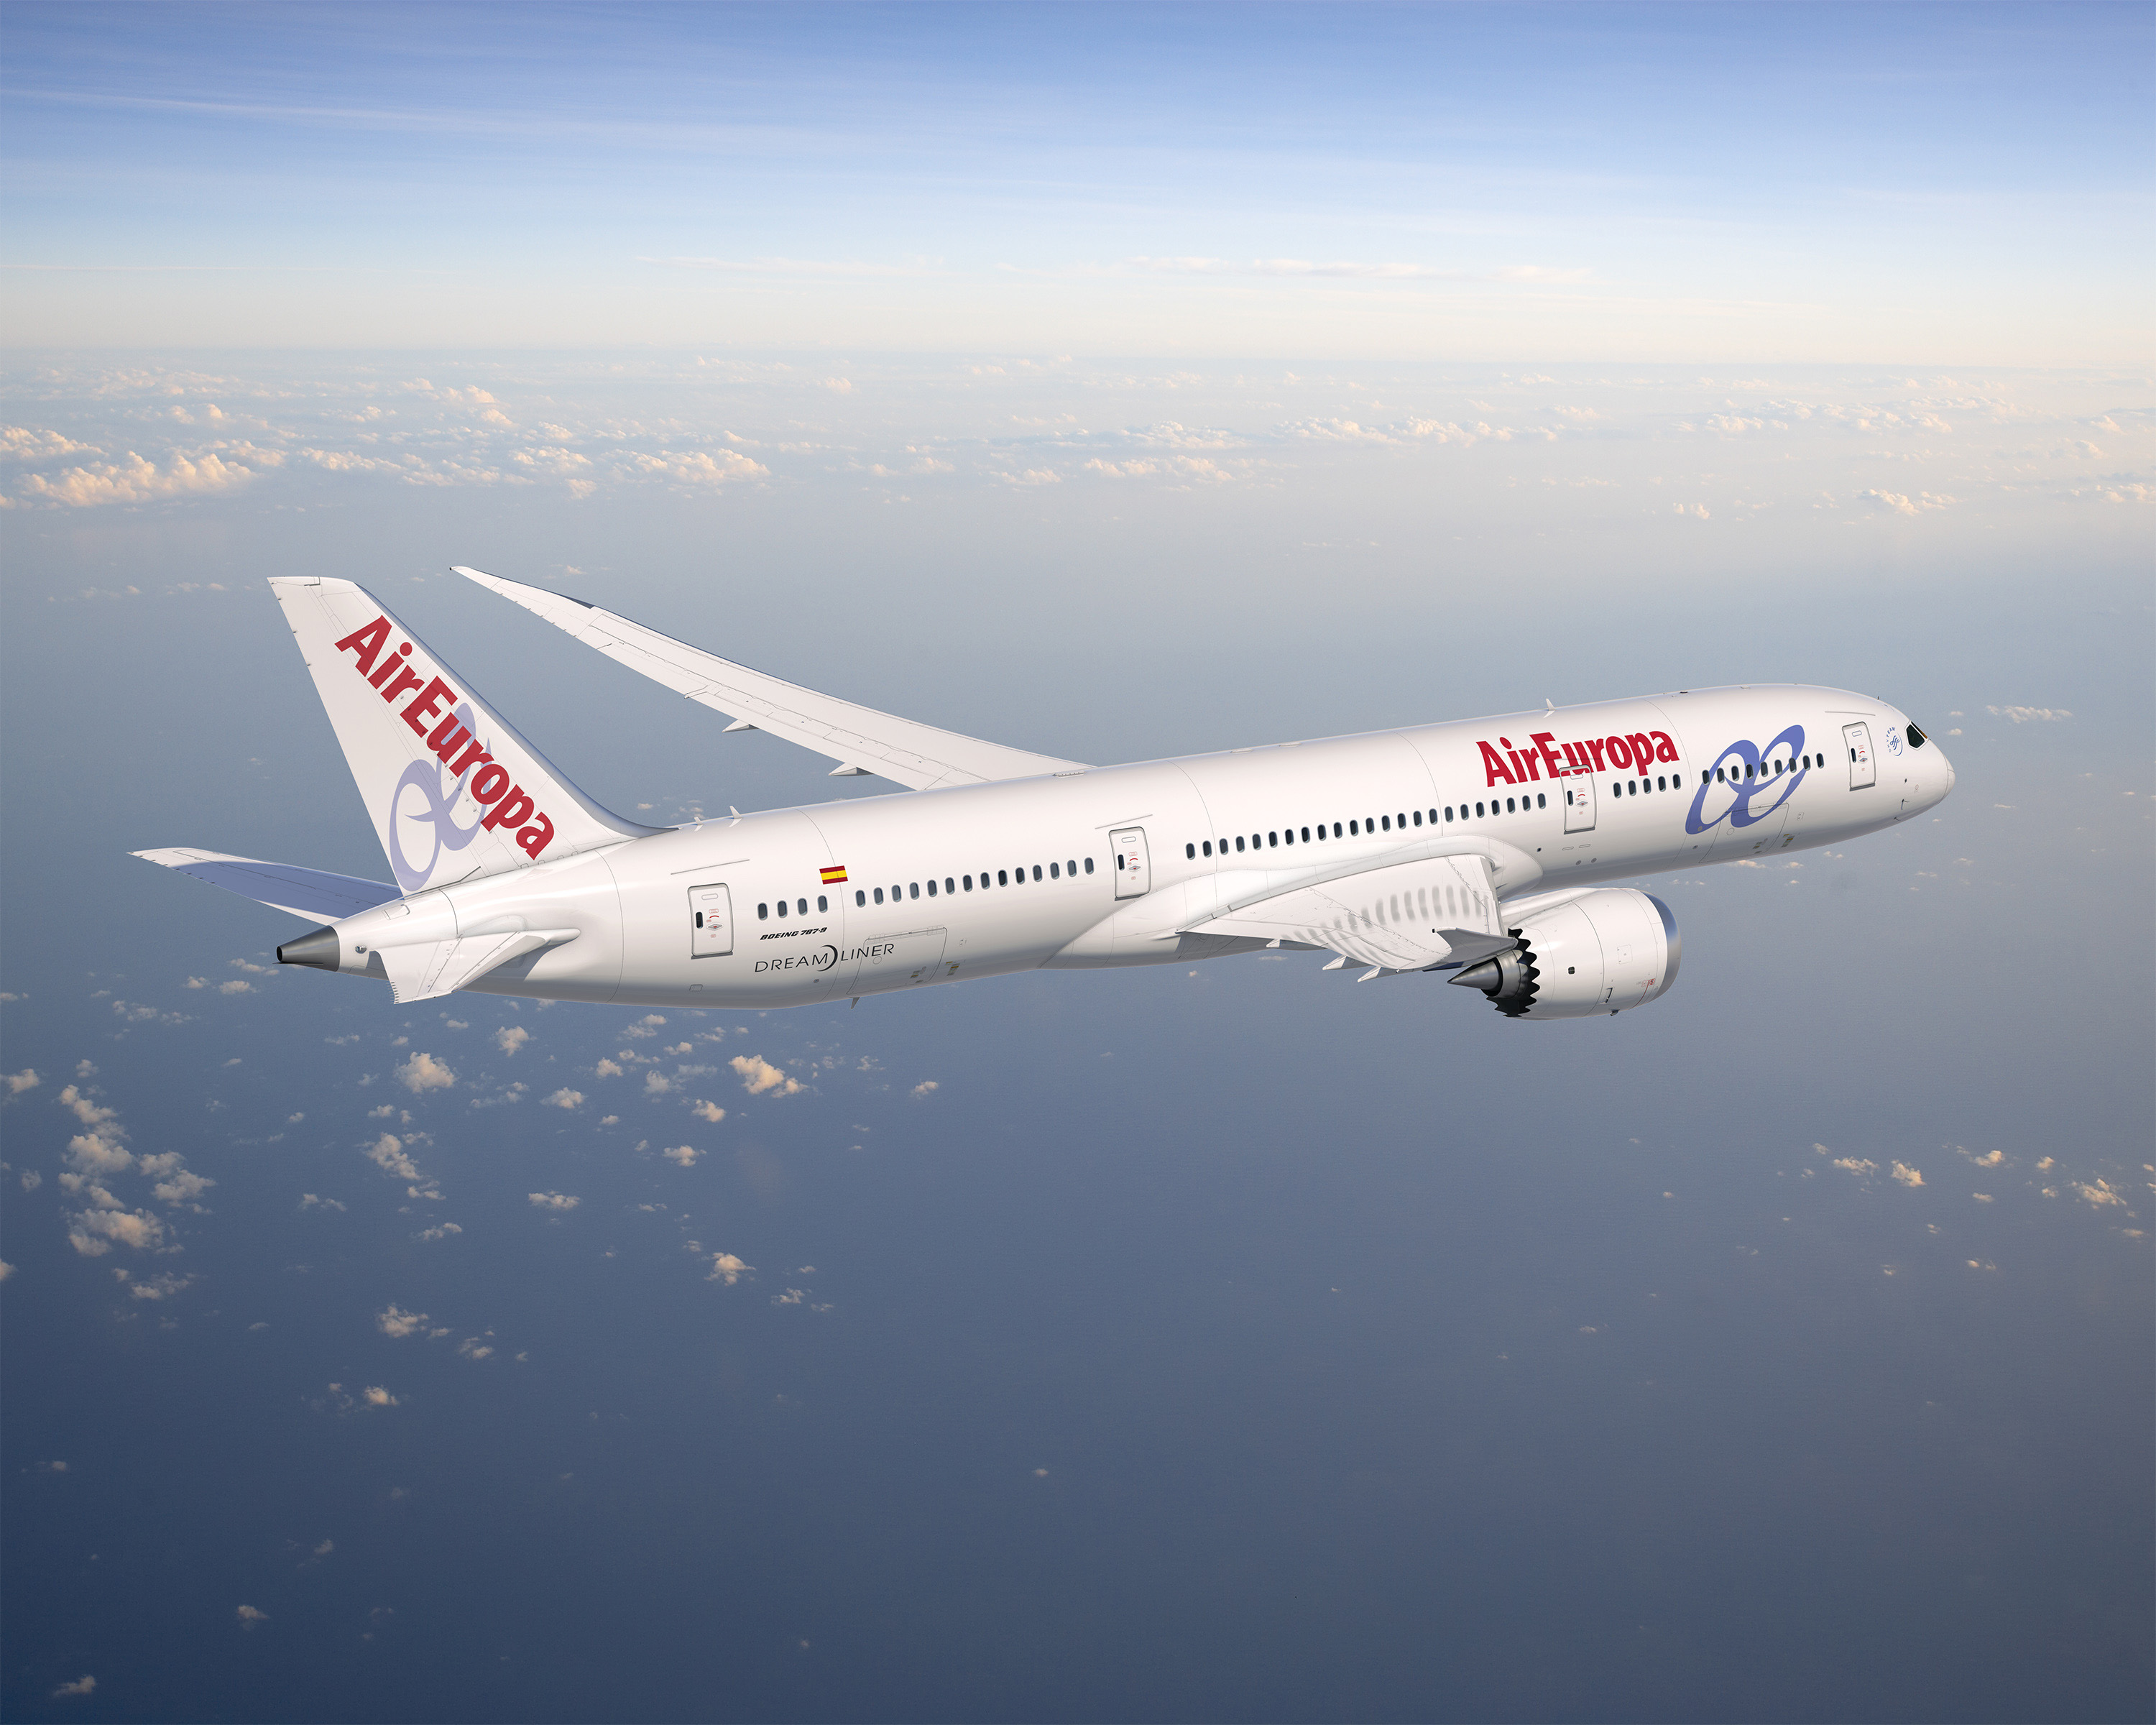 Air europa comienza a operar la ruta madrid miami con b 787 for Air europa oficinas en madrid